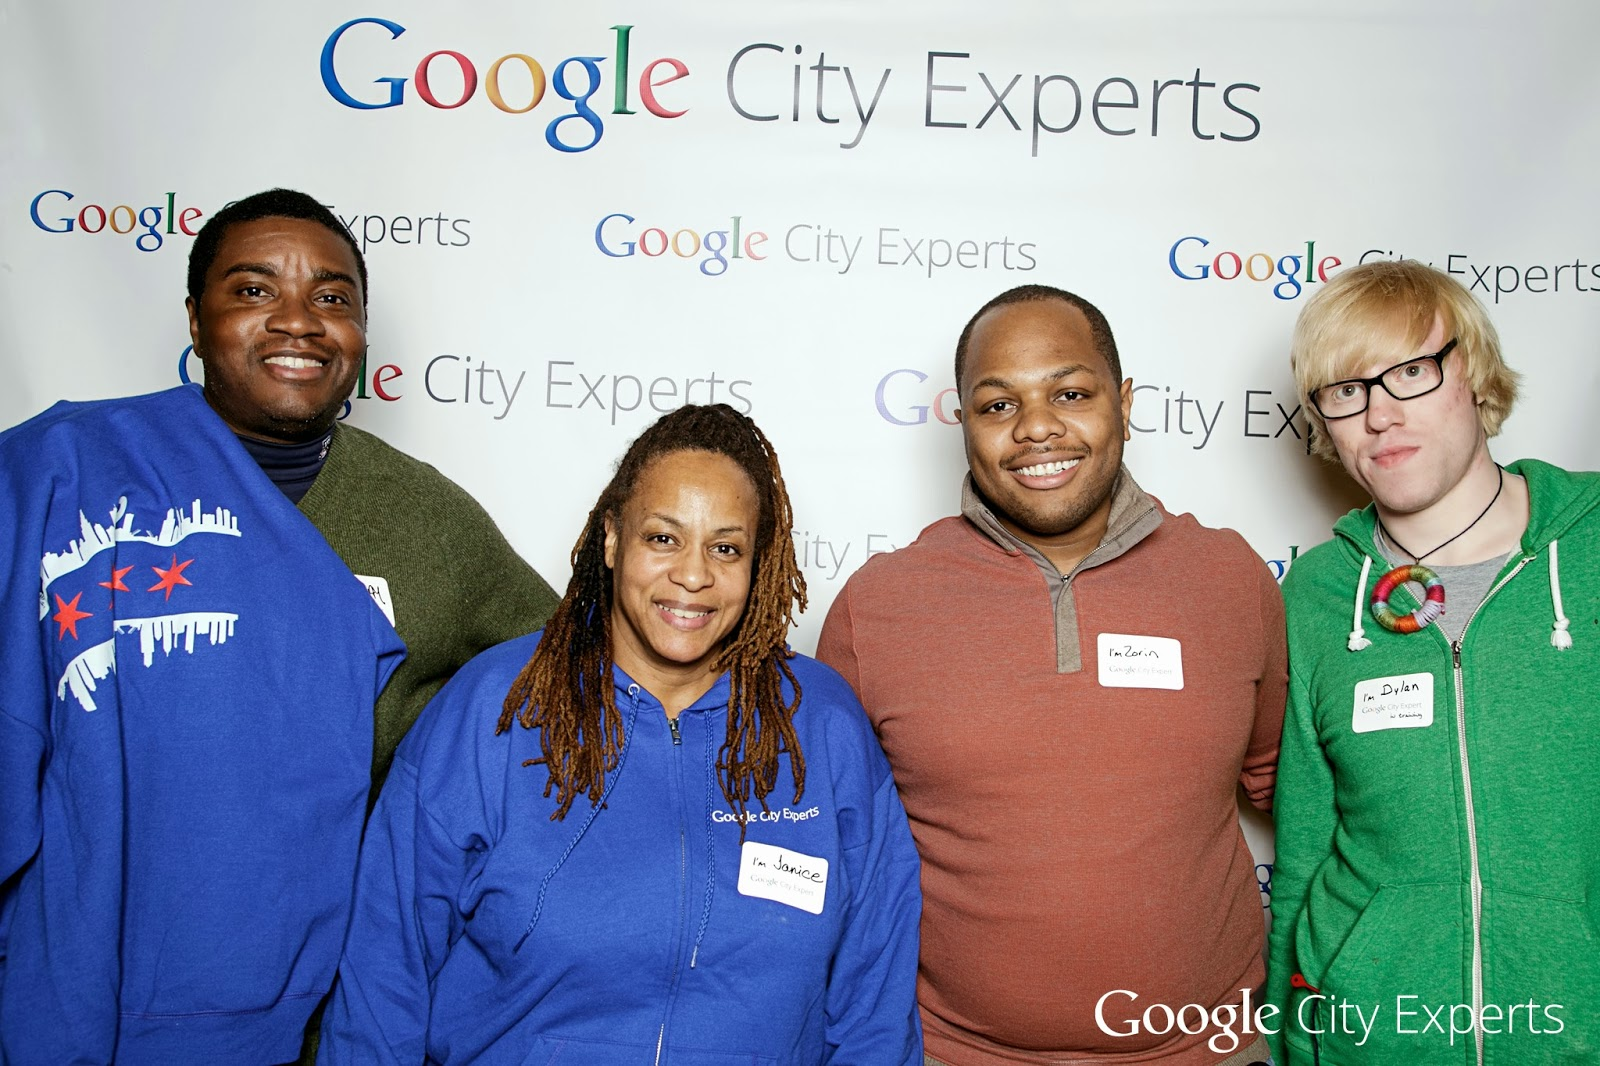 Google City Experts: Cedric, Janice, Zorin, and Dylan